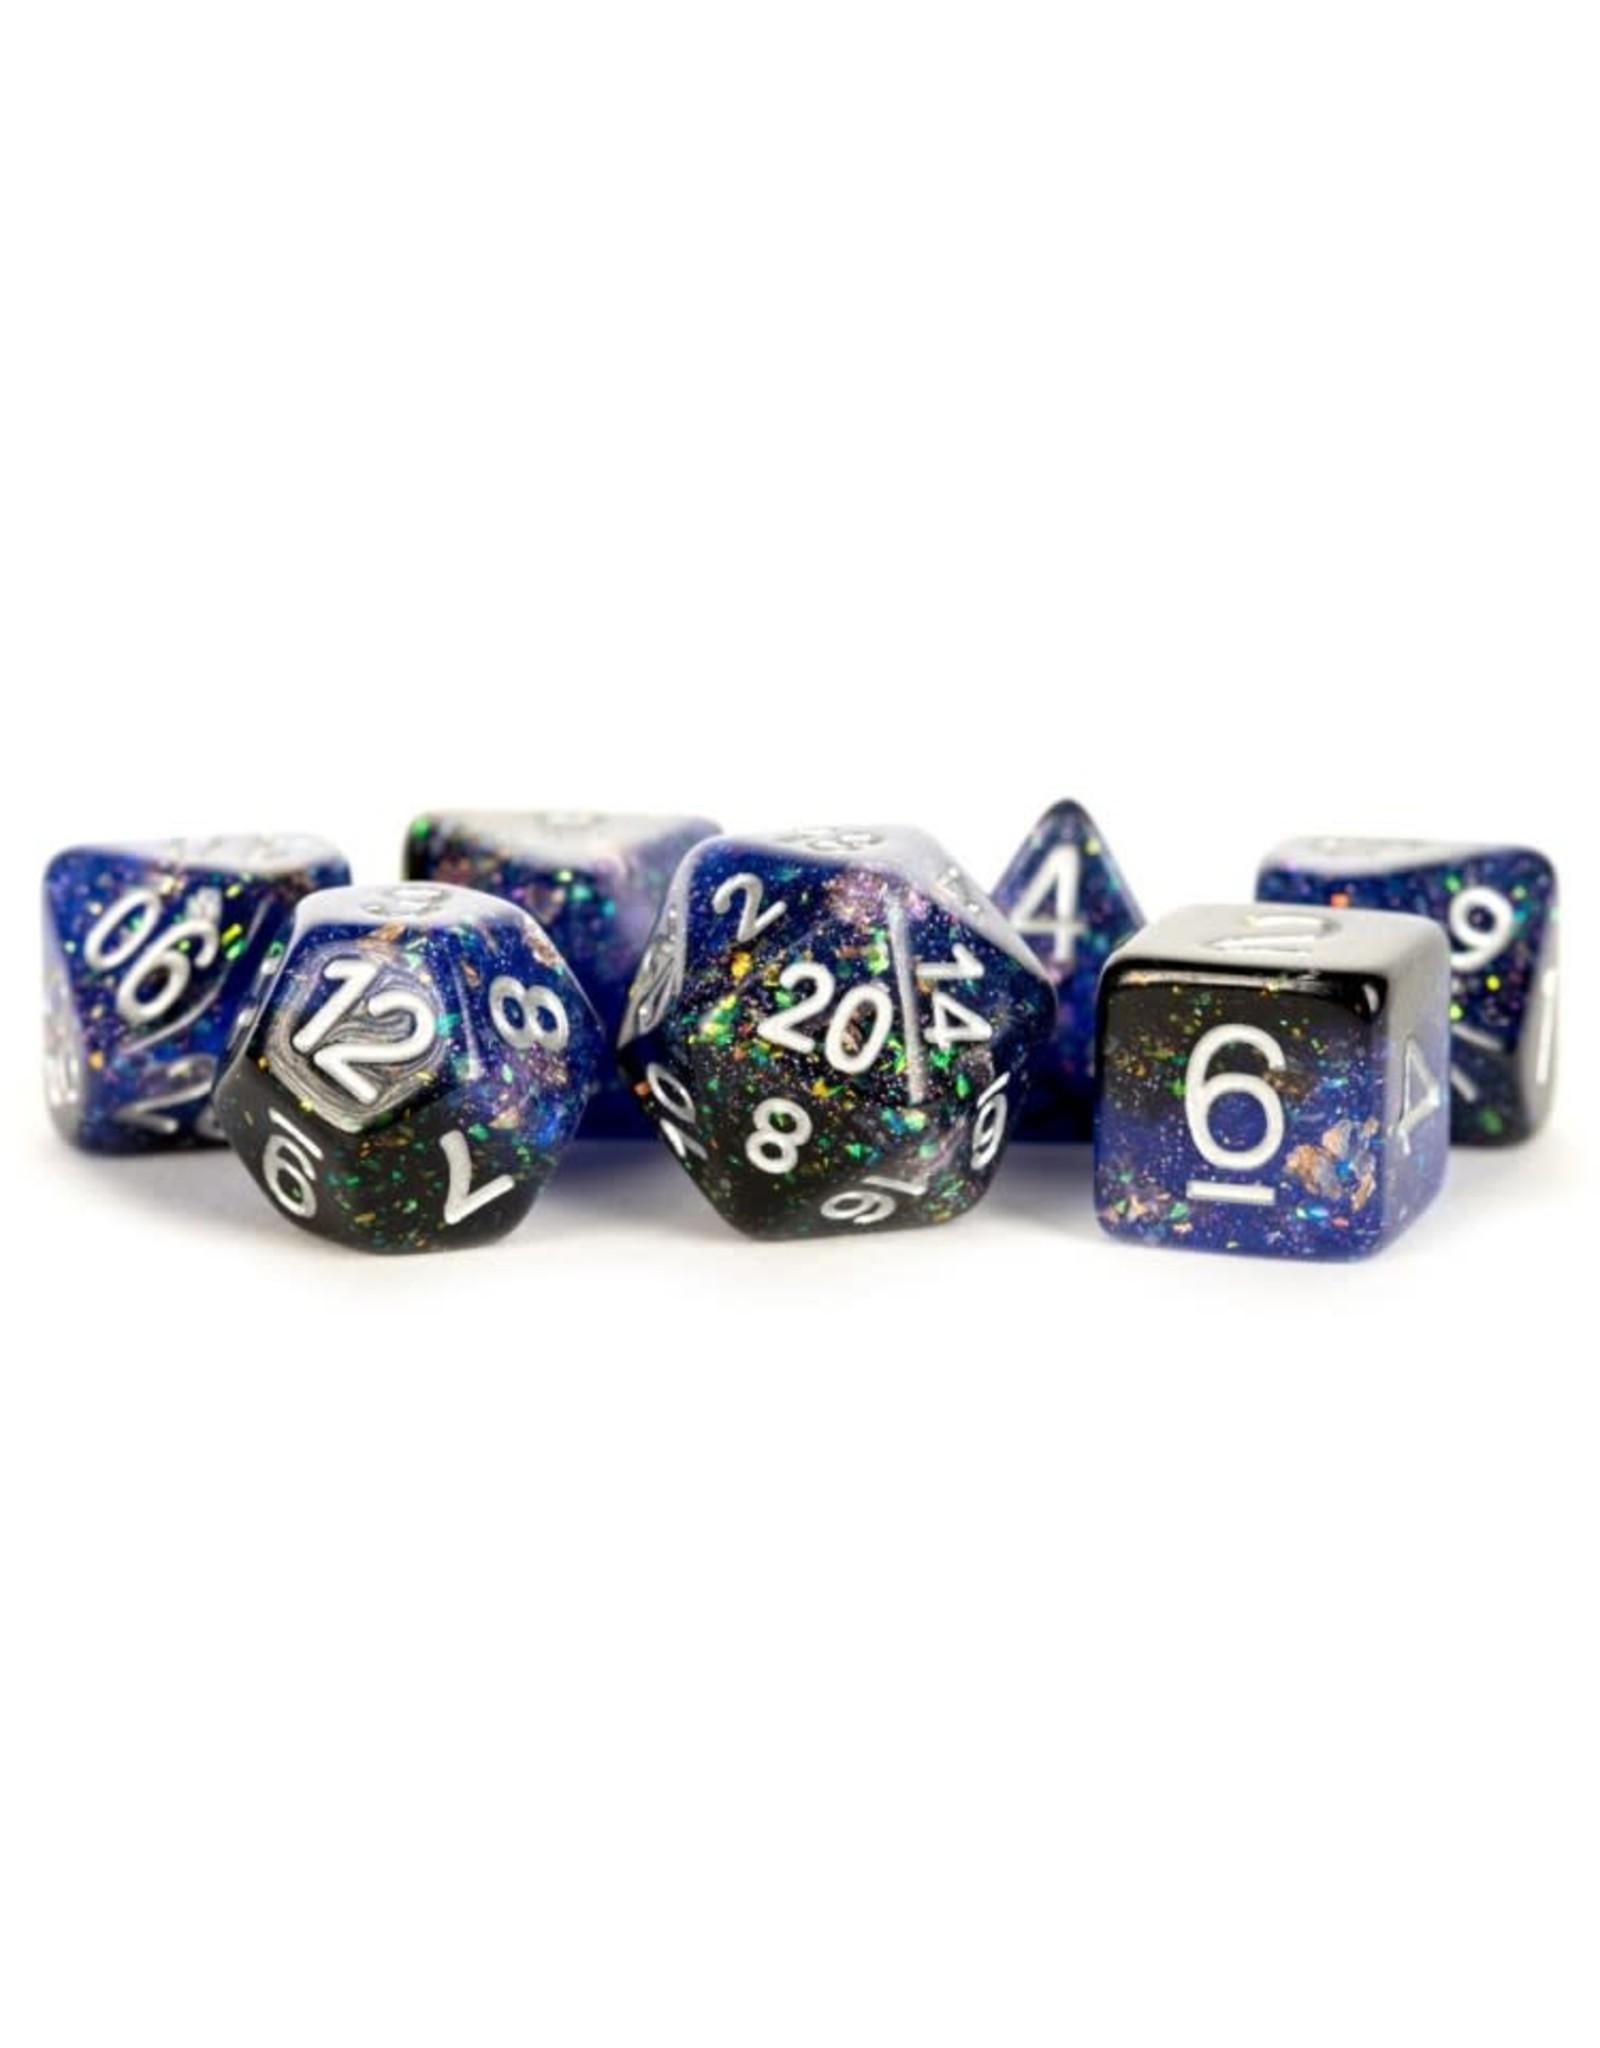 Metallic Dice Games 7-Set Eternal BUBKwh